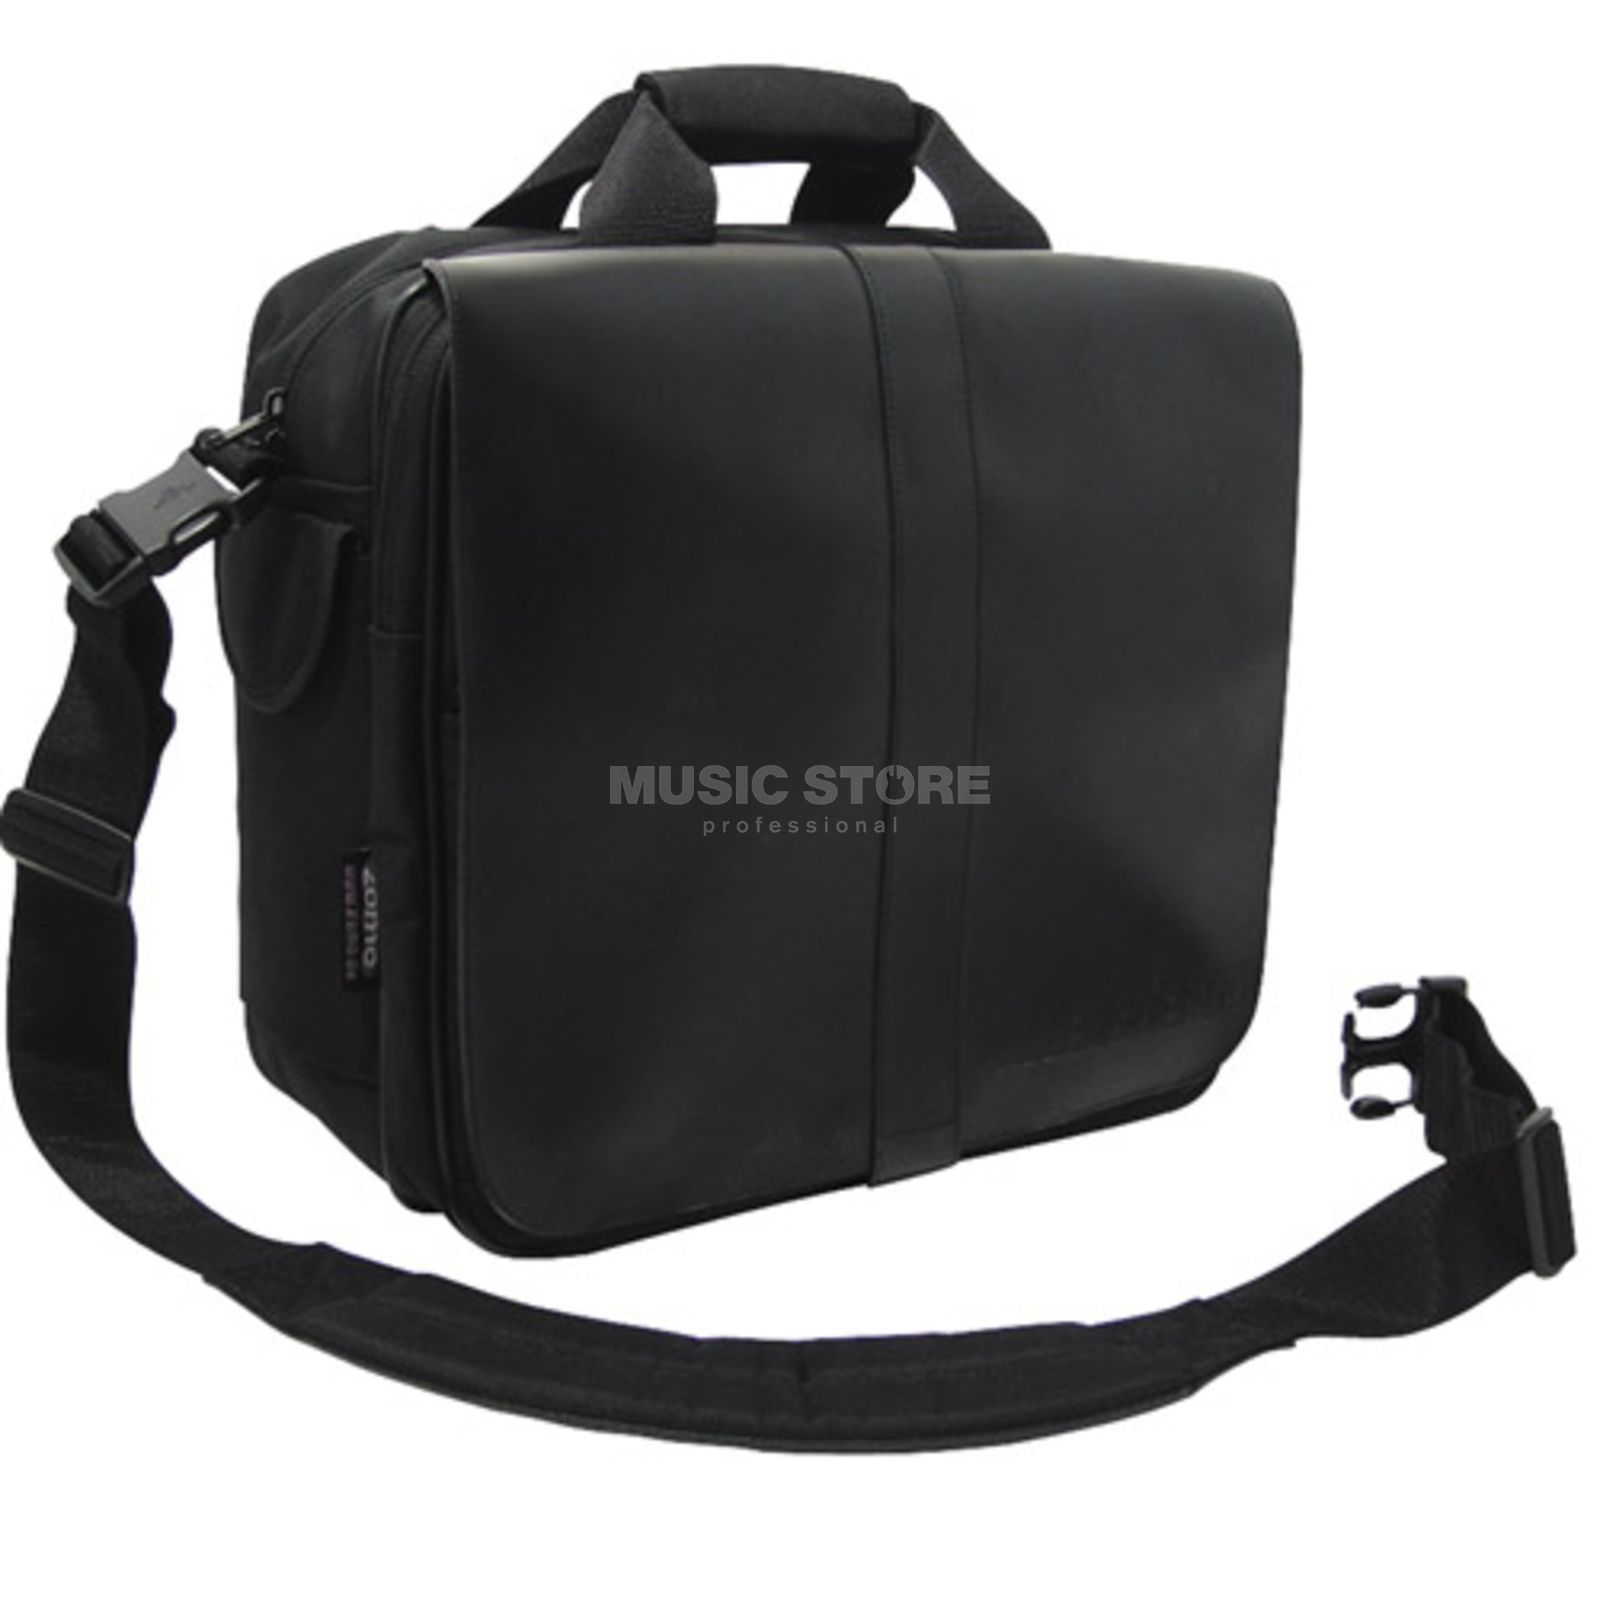 Zomo Digital DJ-Bag Black Allen&Heath Brand Image du produit